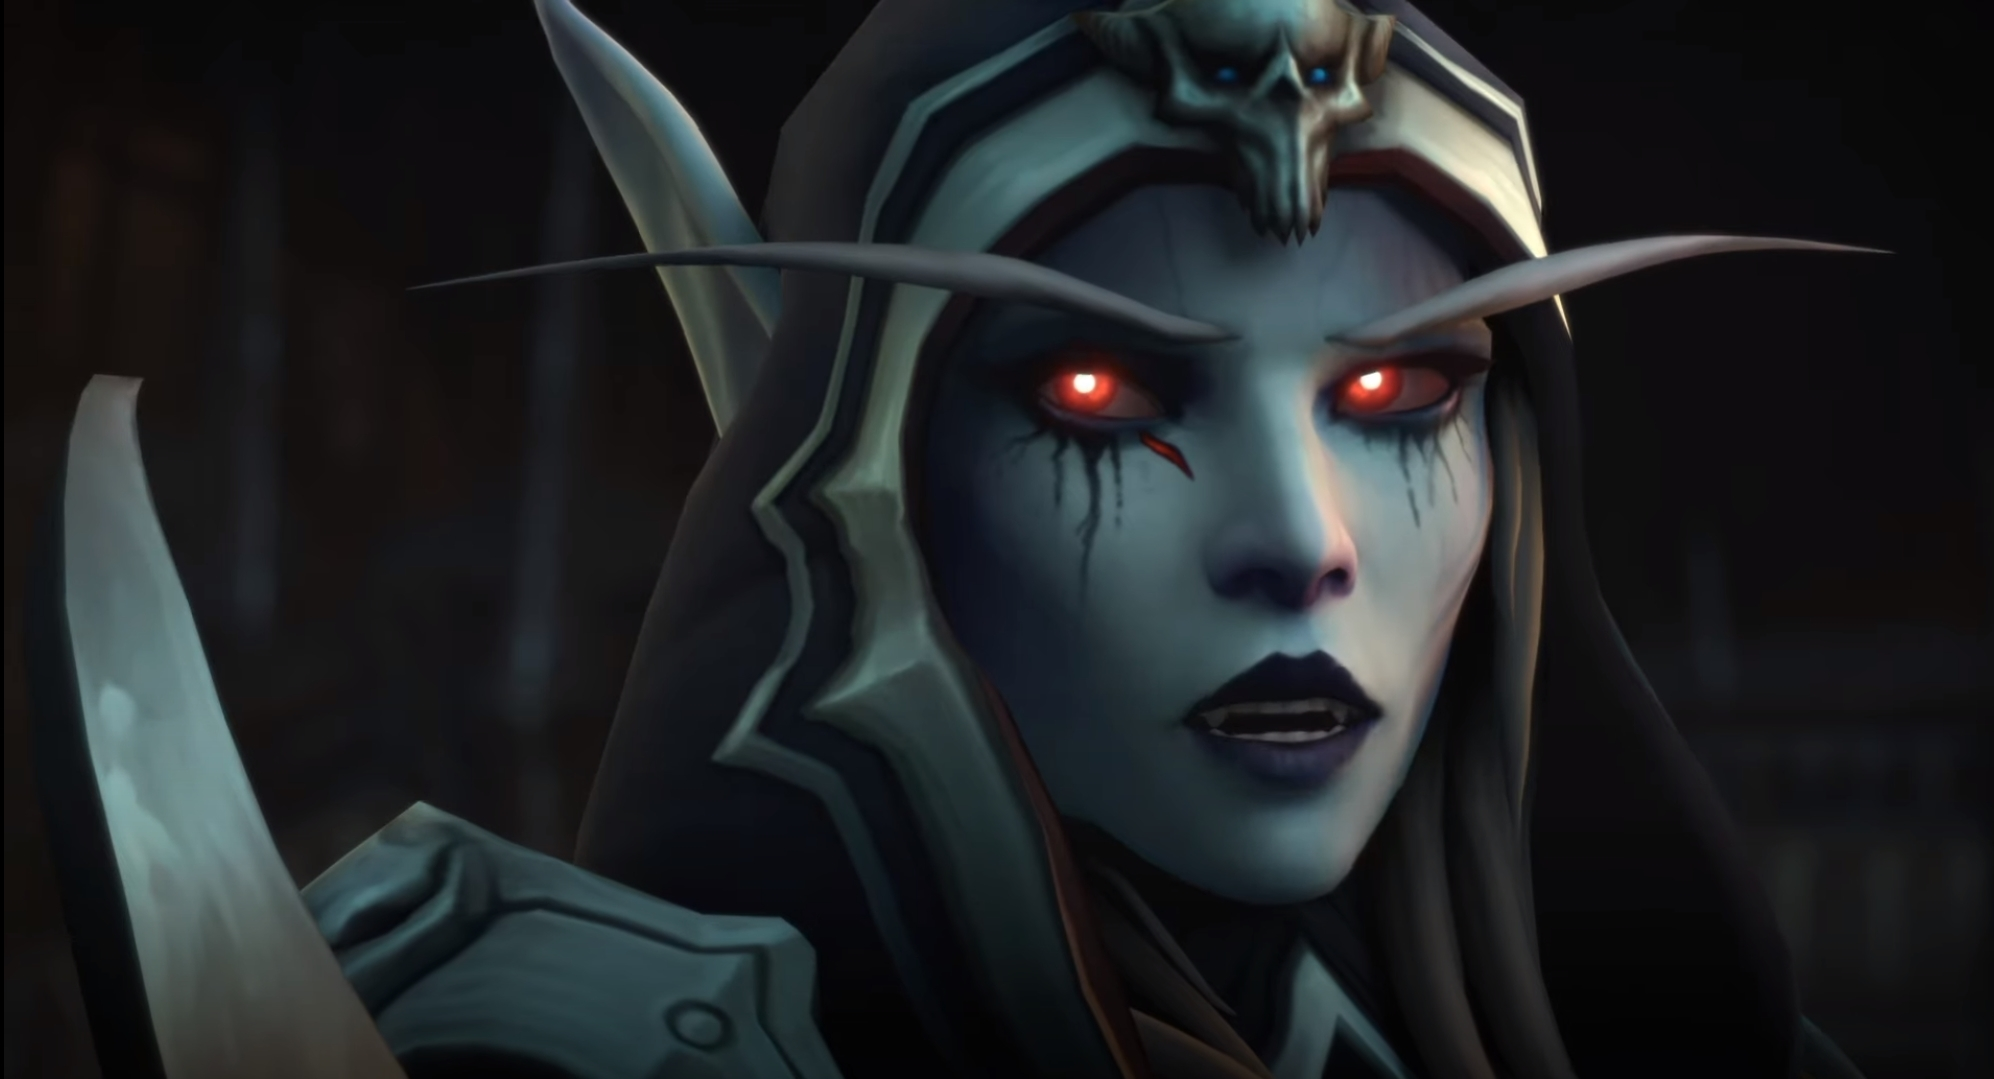 World Of Warcraft: Shadowlands Players Are Stopping Bots By Dropping Clickable Toys